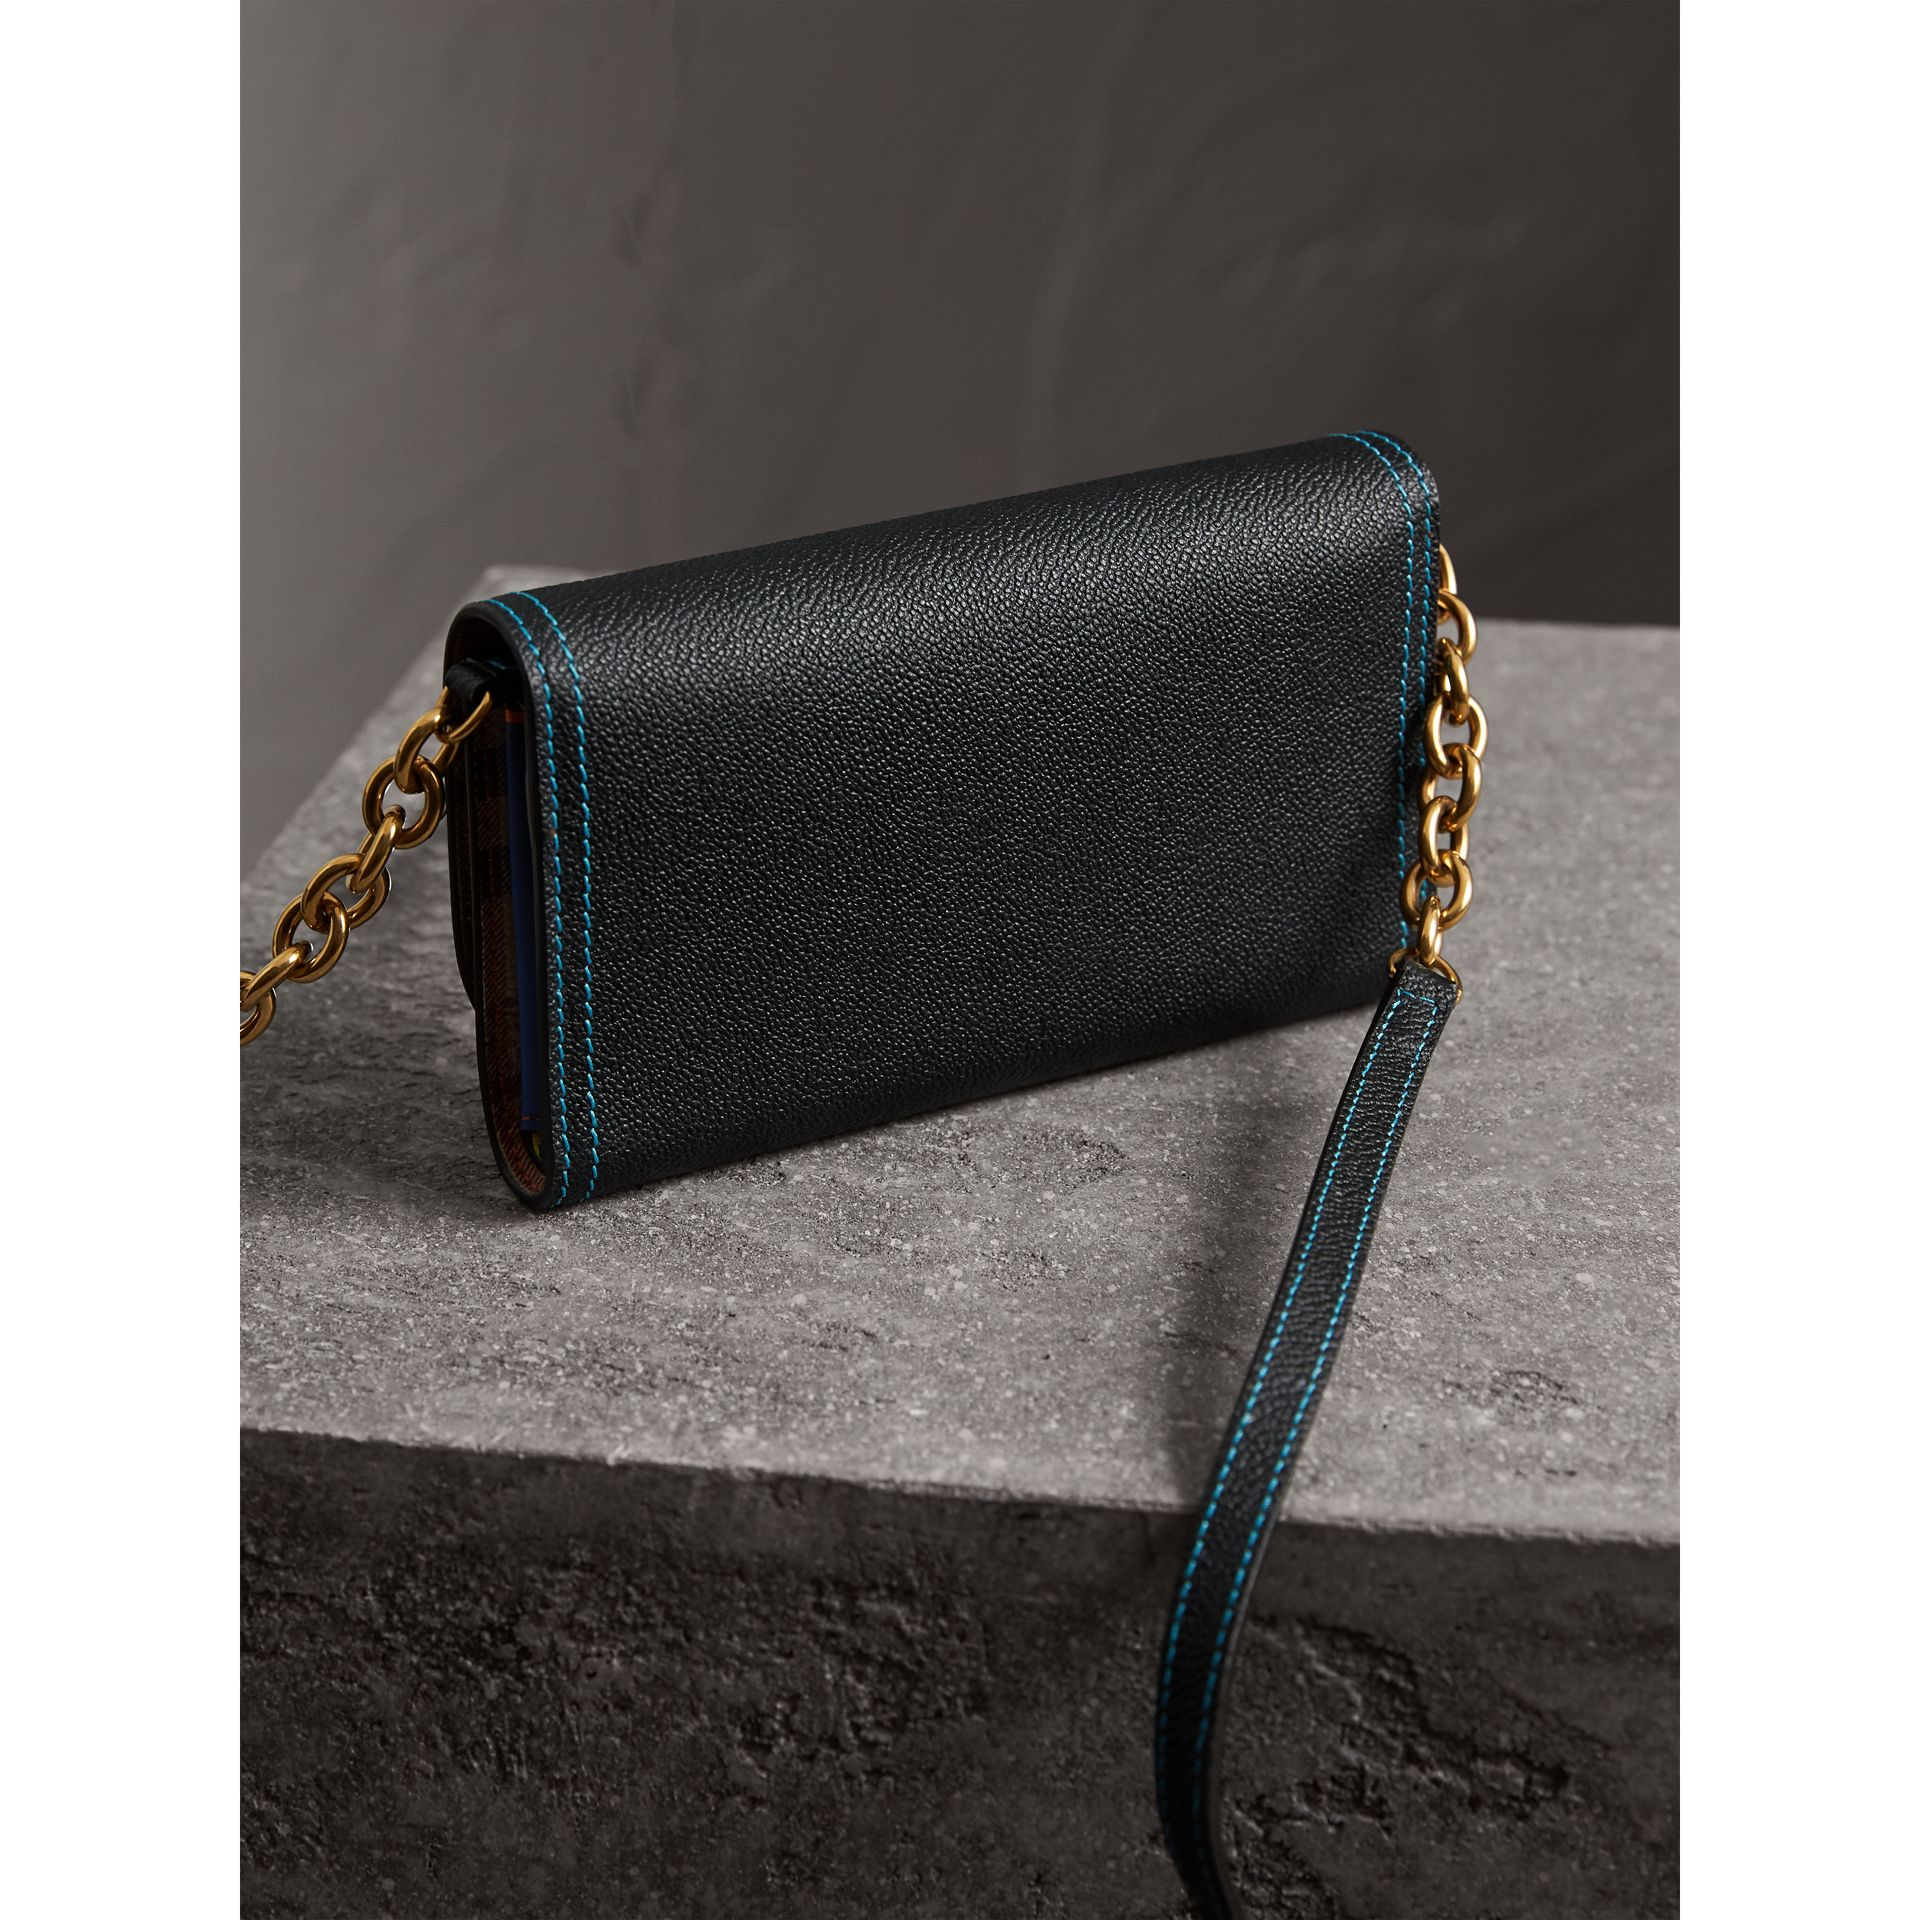 Topstitch Detail Leather Wallet with Detachable Strap in Black/multicolour - Women | Burberry Singapore - gallery image 3